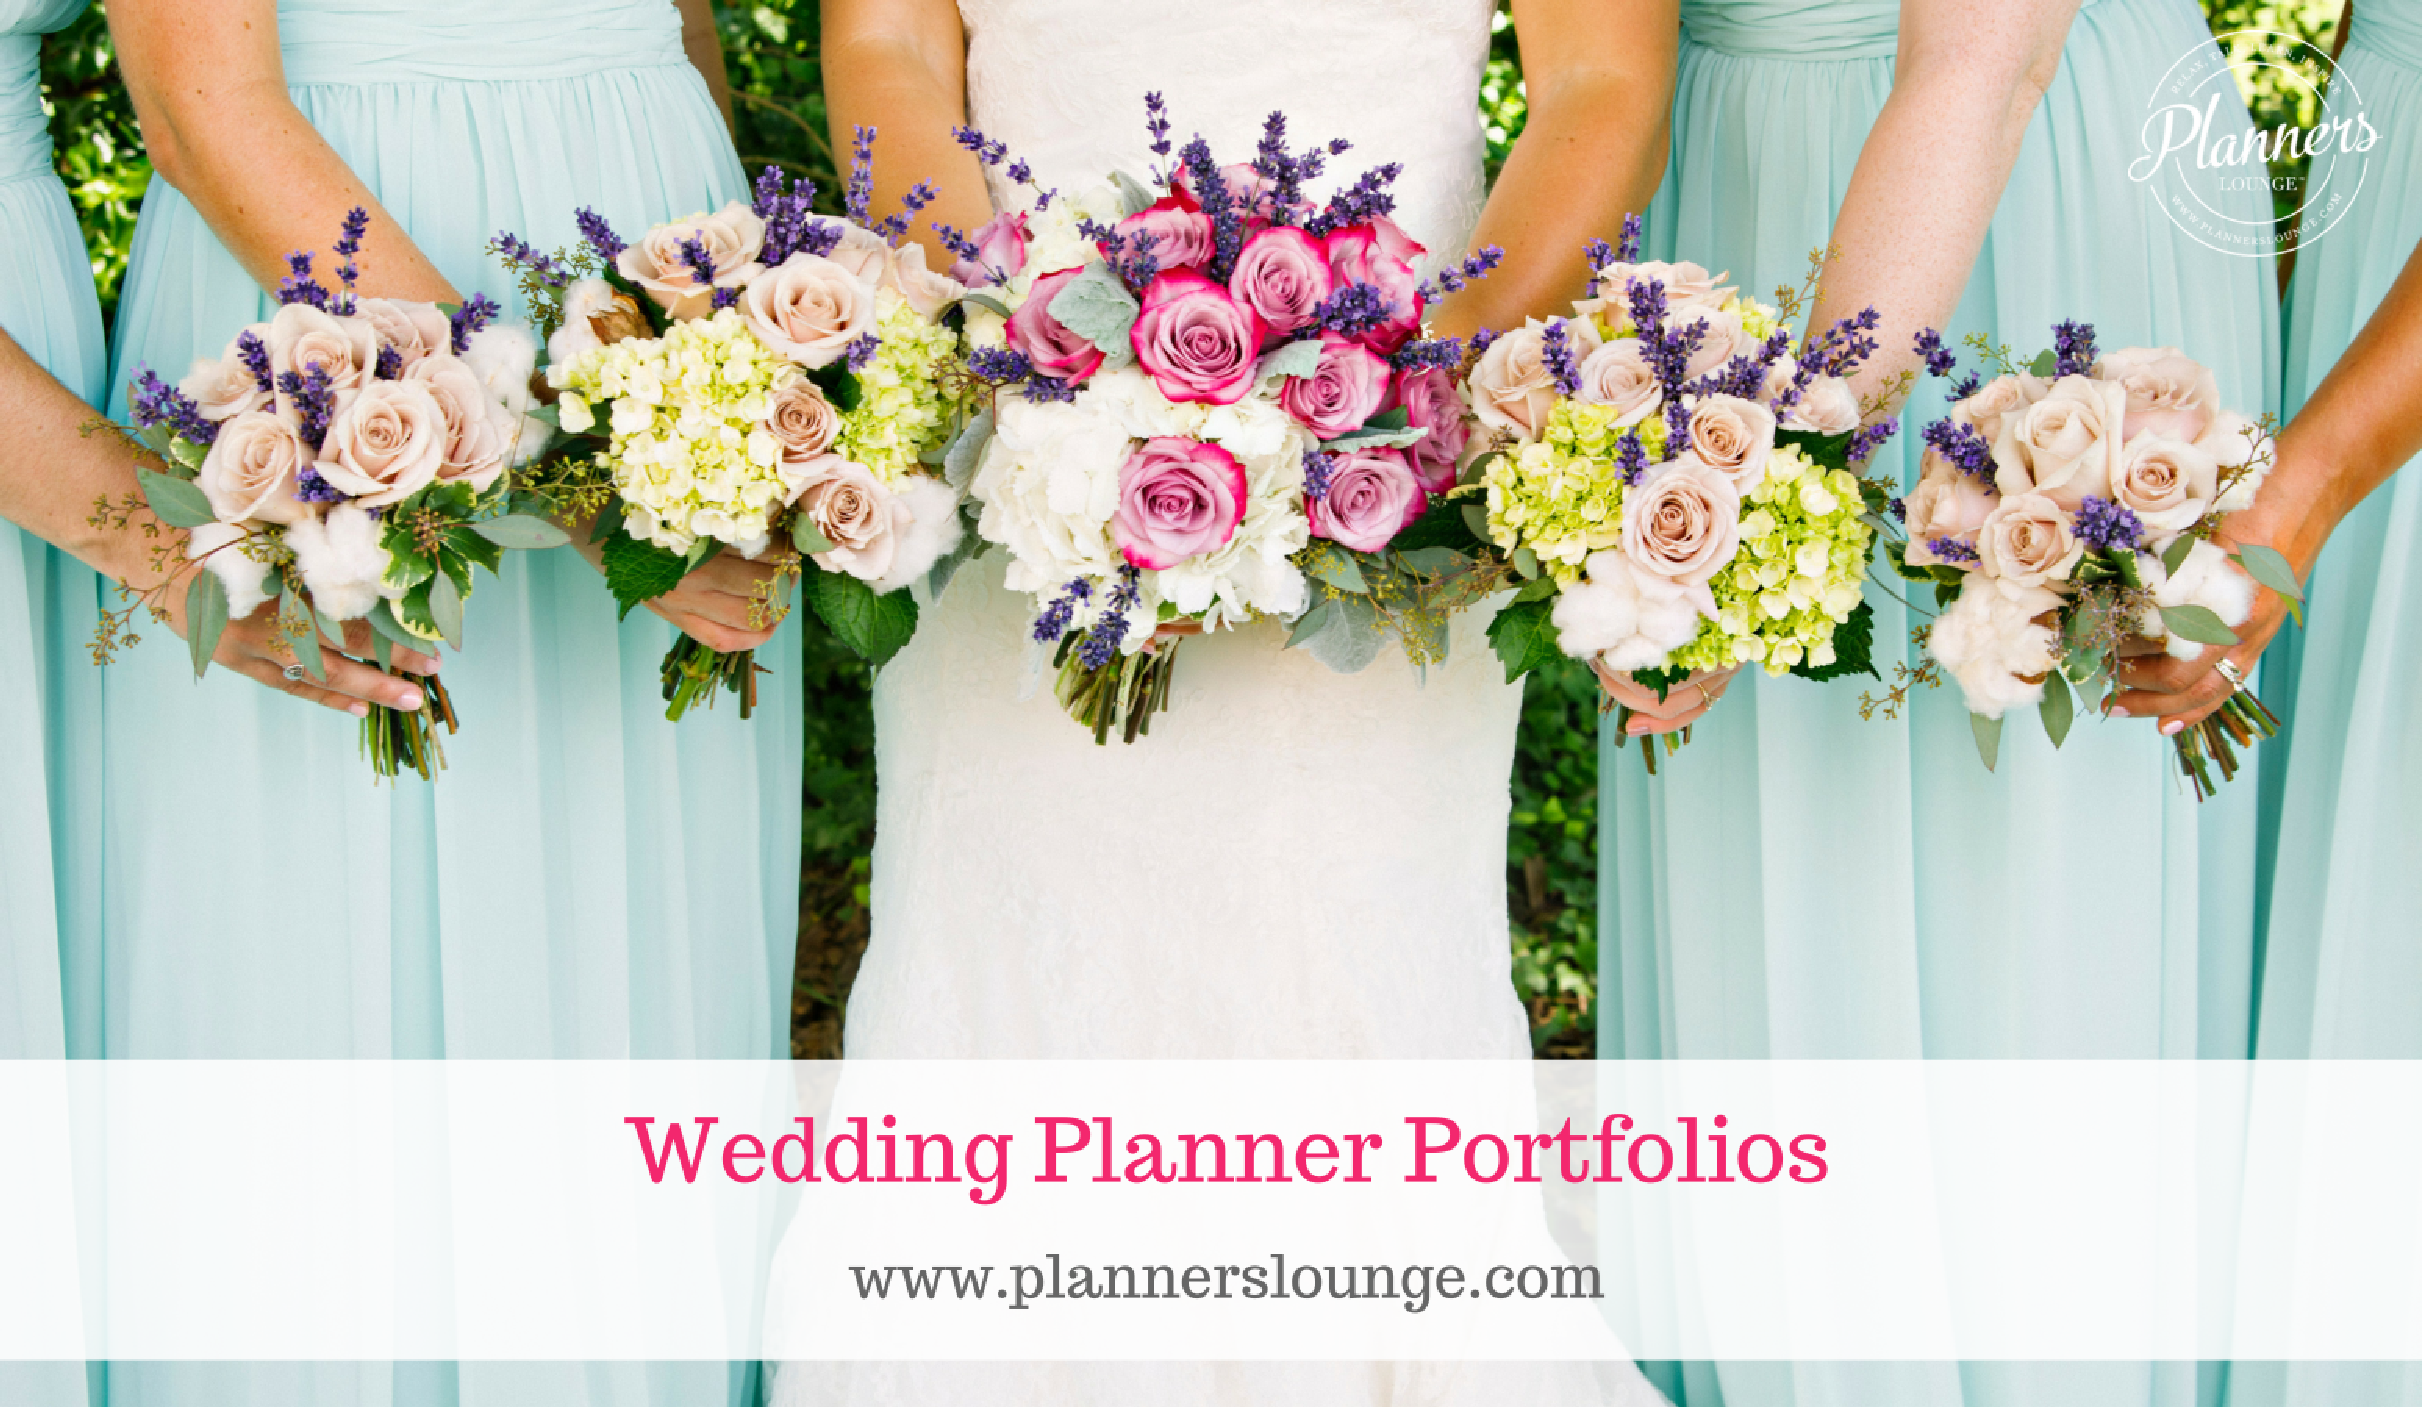 Every Event Planner Has A Diffe Style Of Portfolio There Is No Right Or Wrong Way To Create An Here Are The Most Common Items